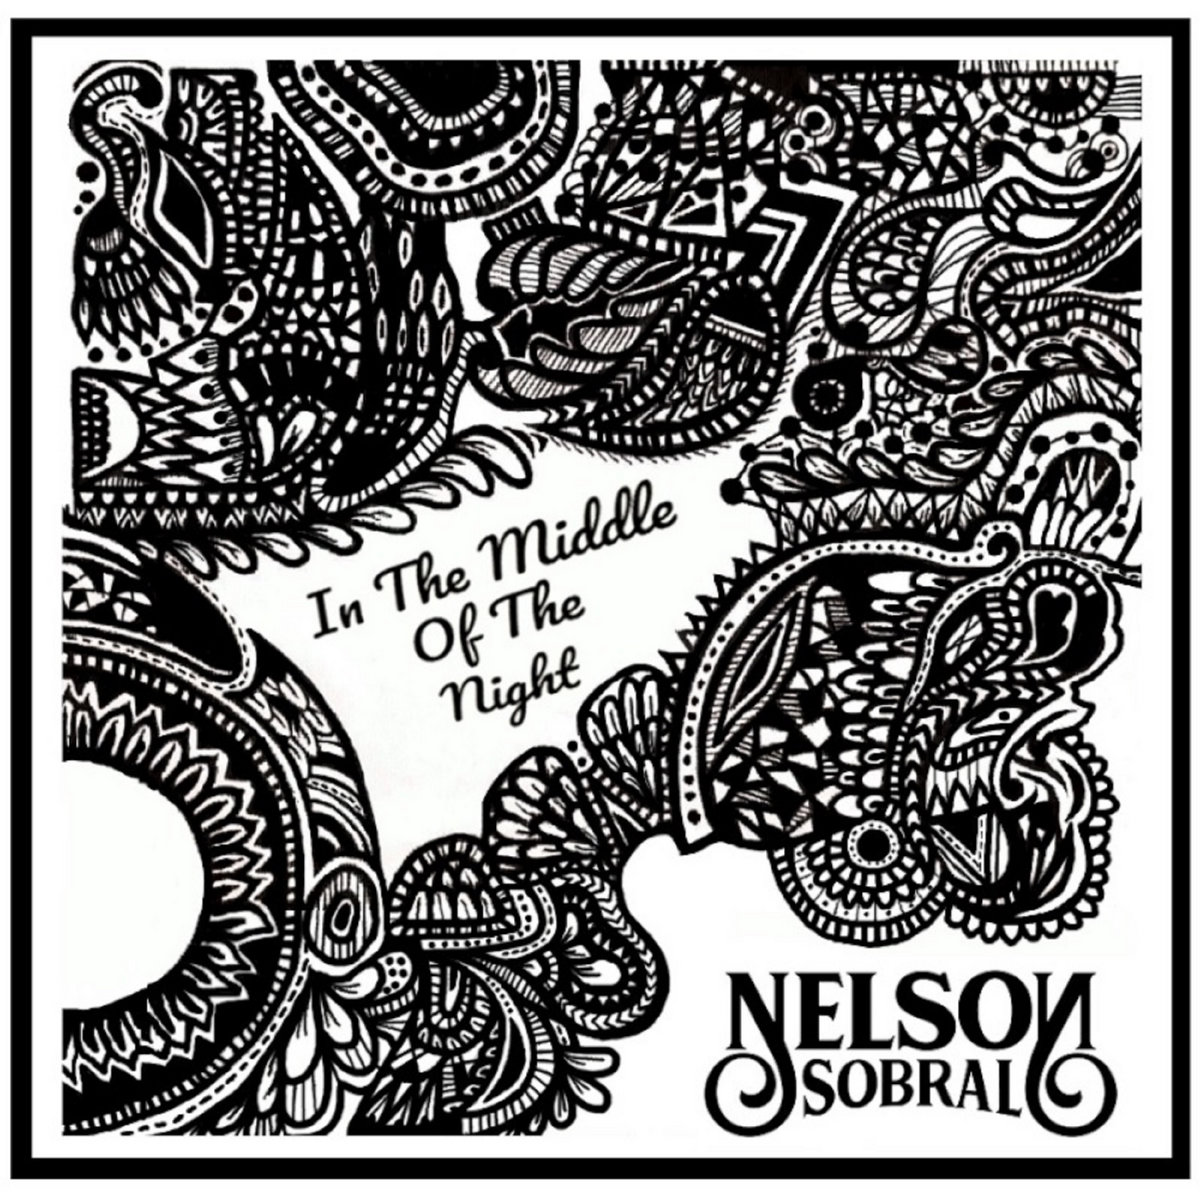 In The Middle Of The Night by Nelson Sobral